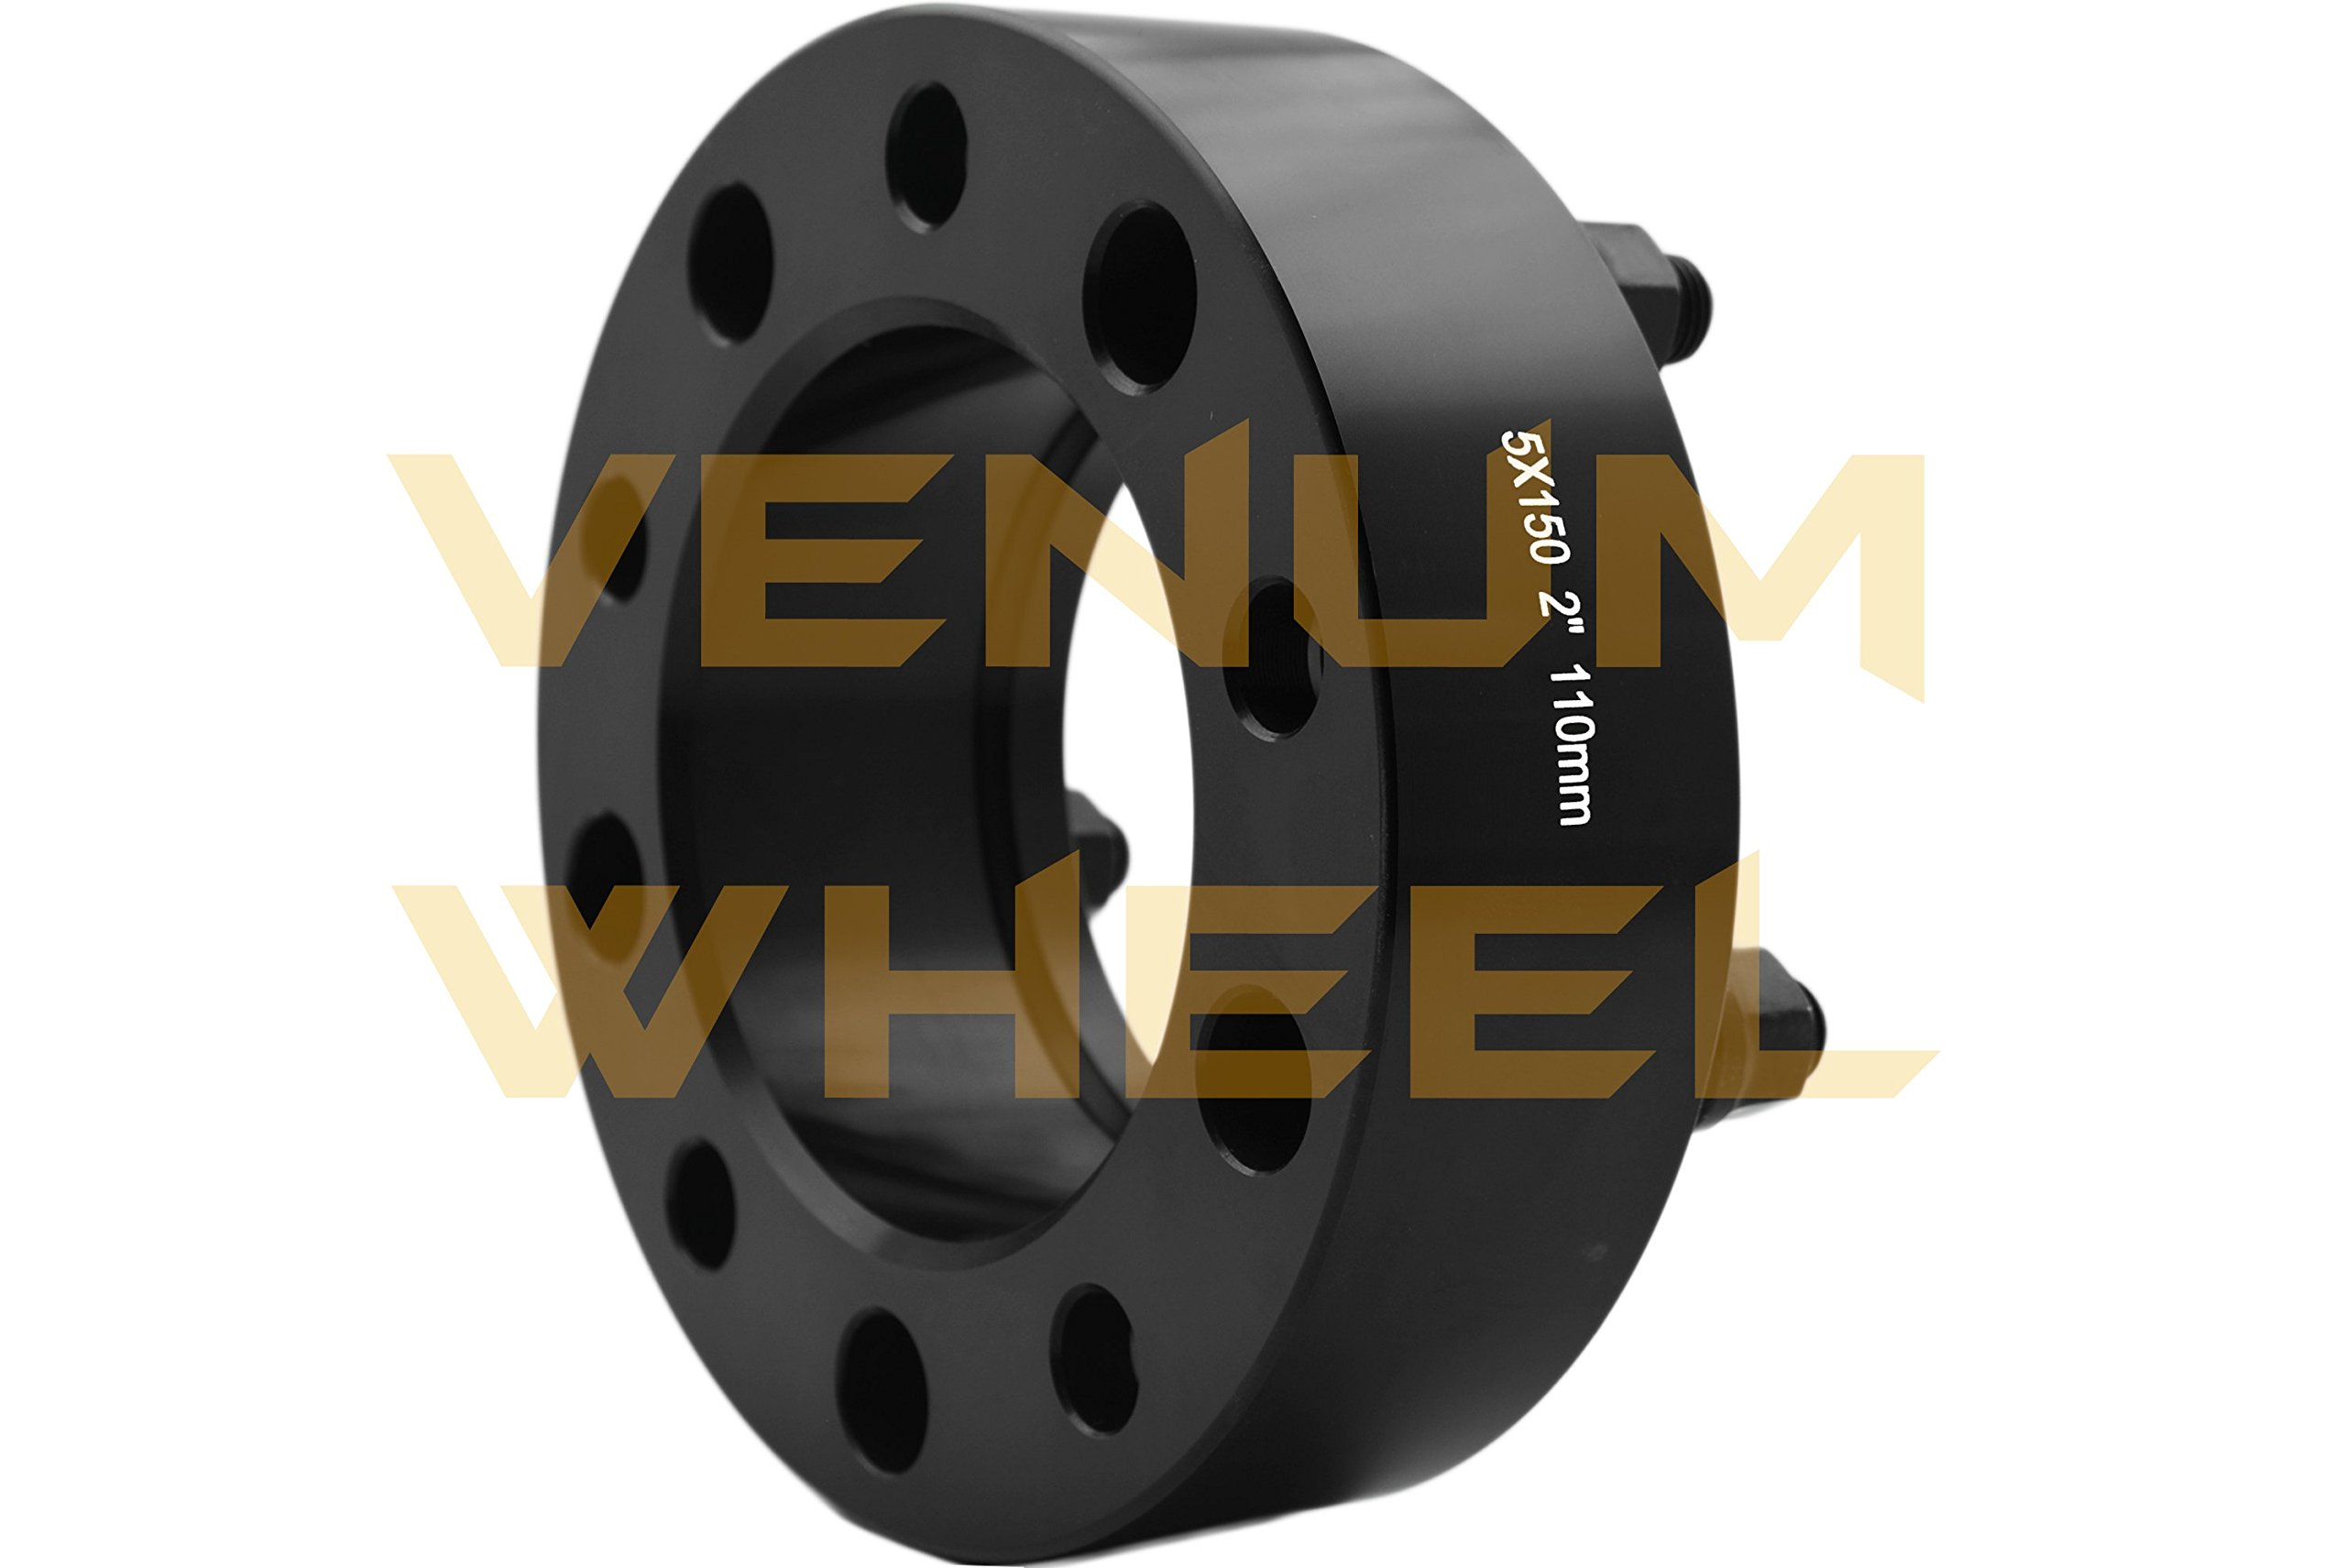 4 Pc 5x150 to 5x150 2'' Thick Black Hubcentric Wheel Spacers Adapter for Toyota Tundra 2007-2016 Hub Bore 110mm 14x1.5 Studs 6061 T6 Billet Aluminum (07-) Black by Venum wheel accessories (Image #5)